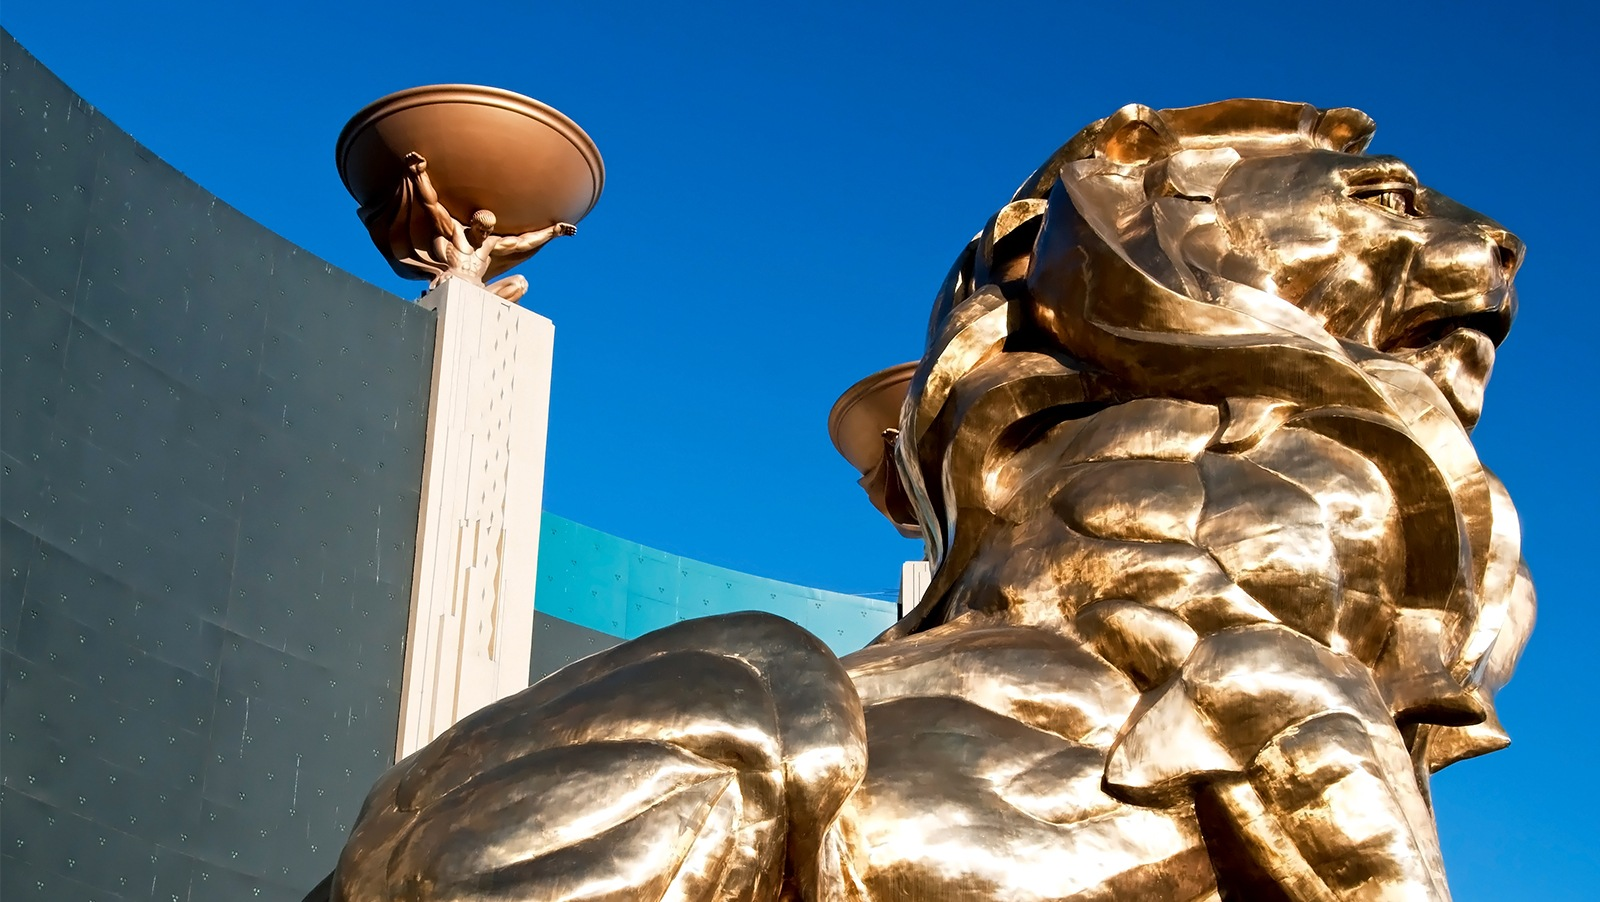 Putting the MGM corporate axe in perspective